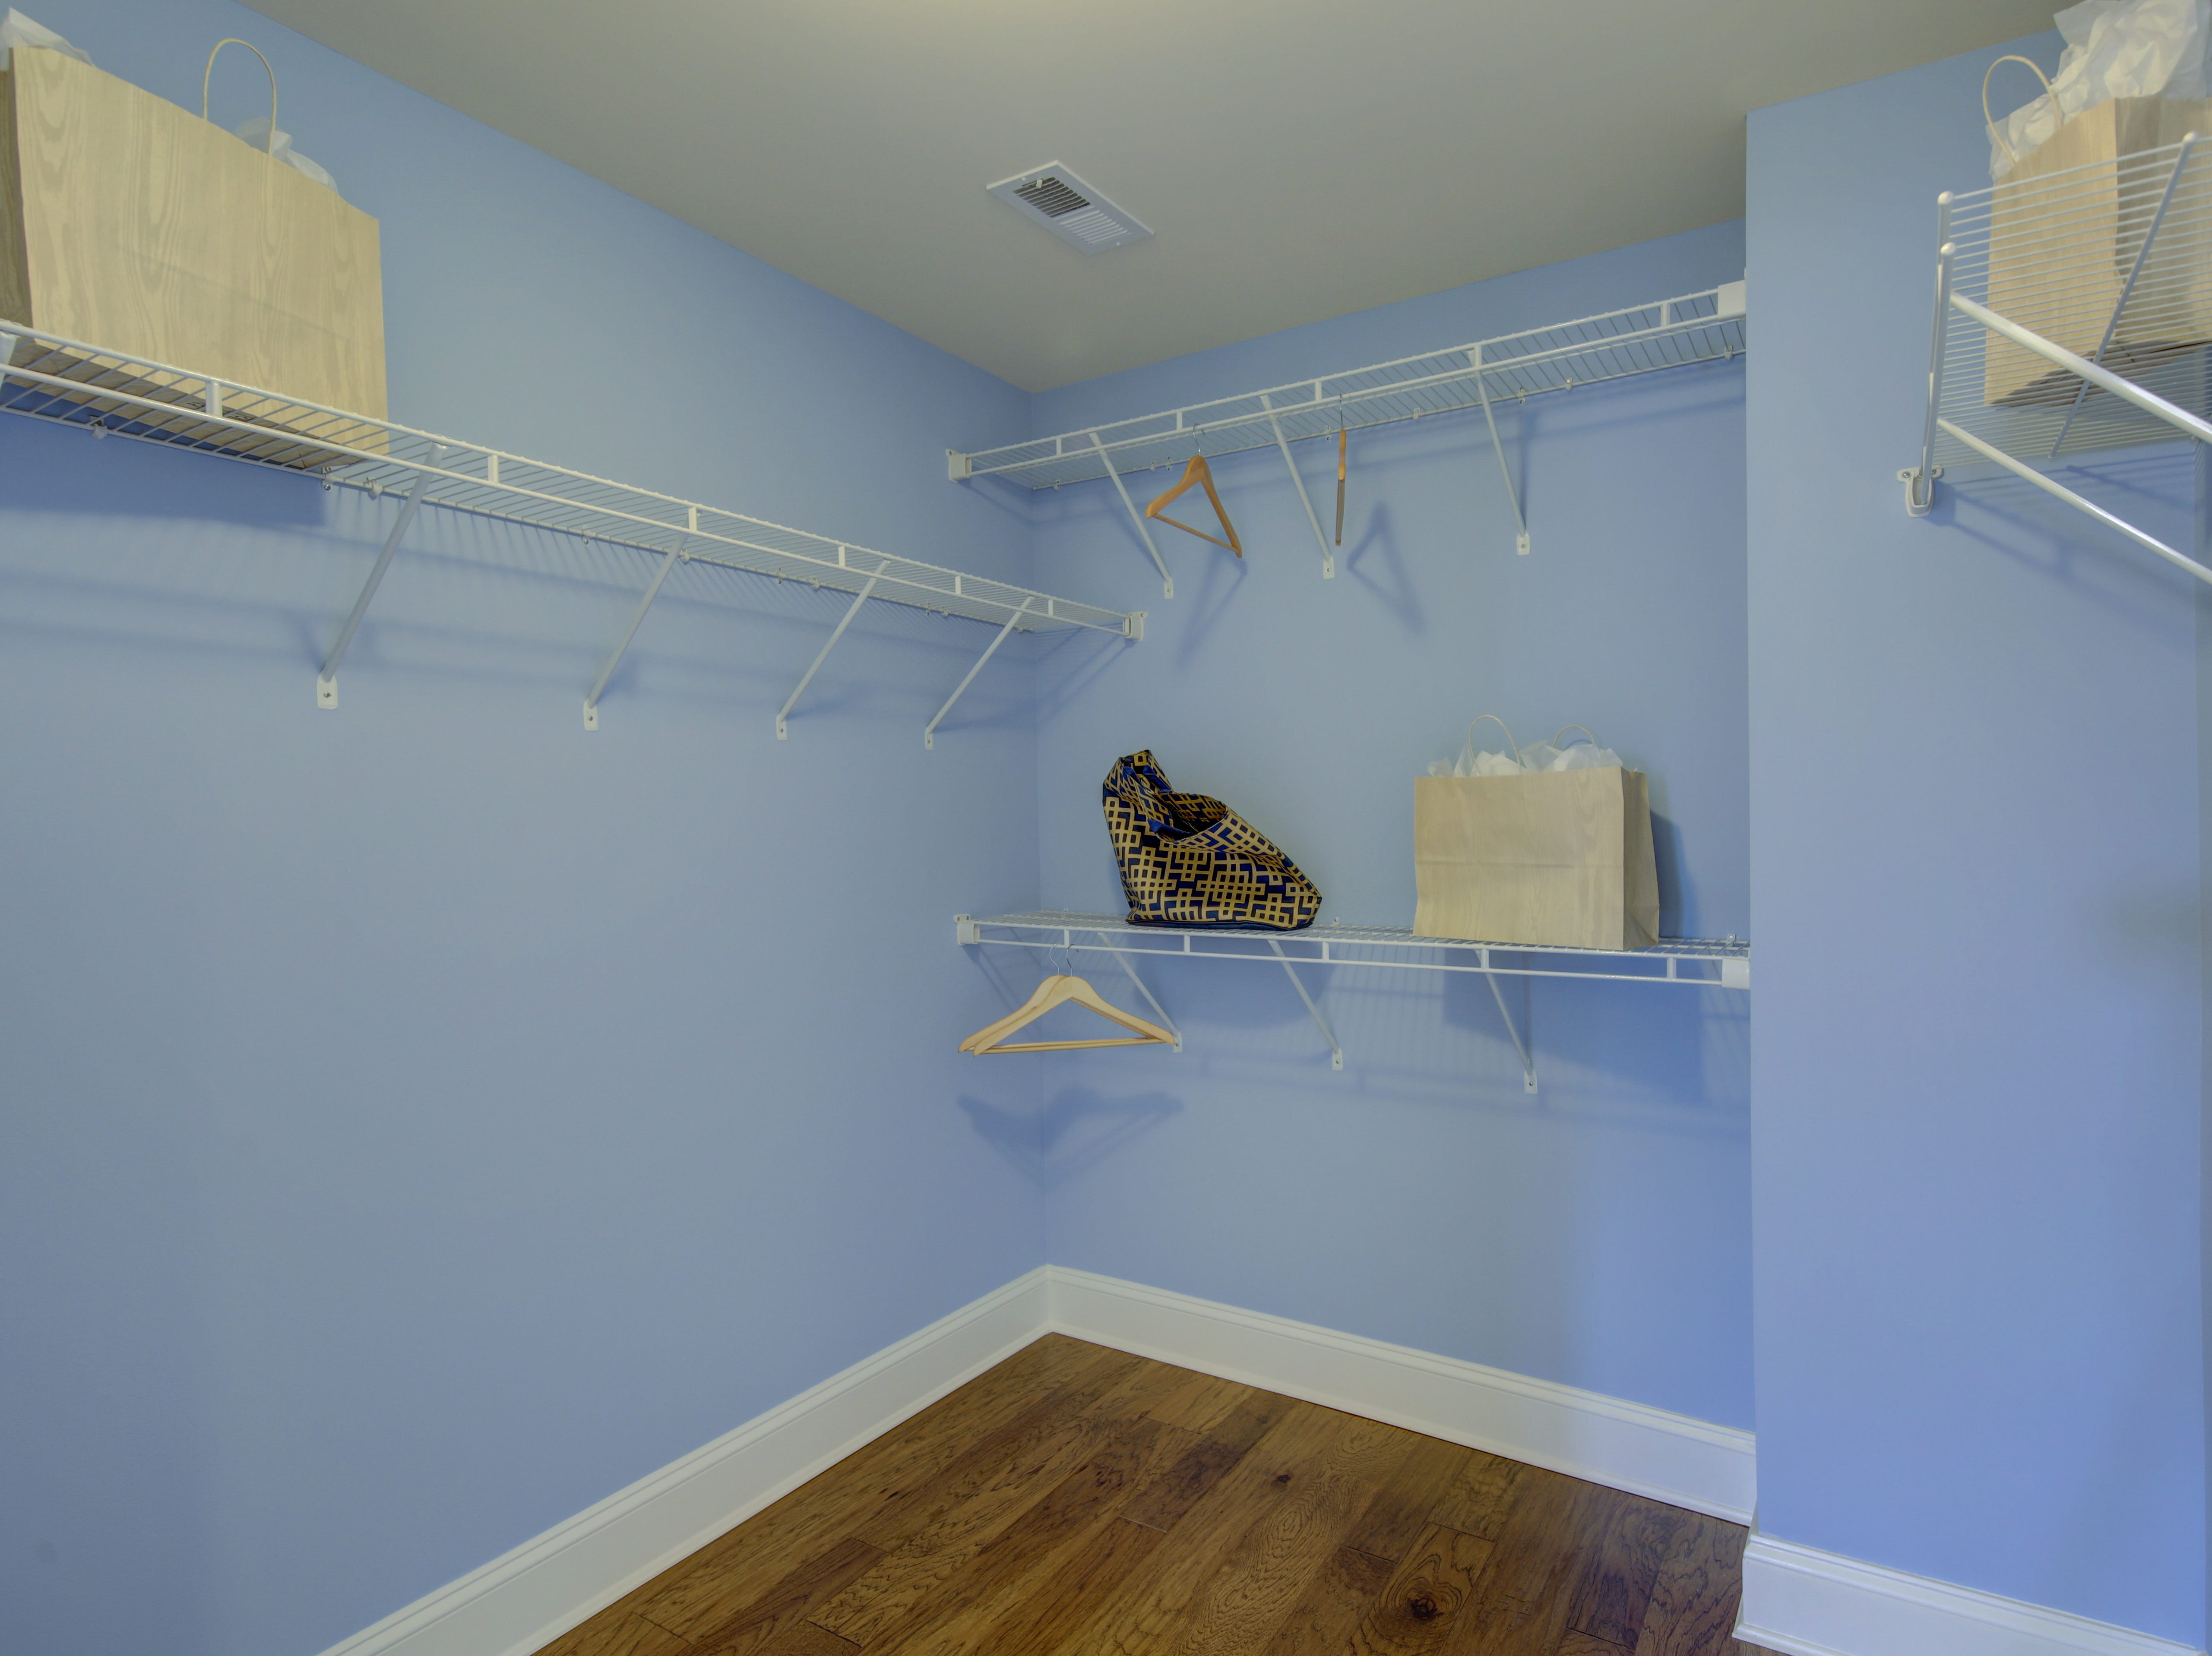 The walk-in closet of the master bedroom in the model home of The Overlook in Selbyville offers lots of his and her space.